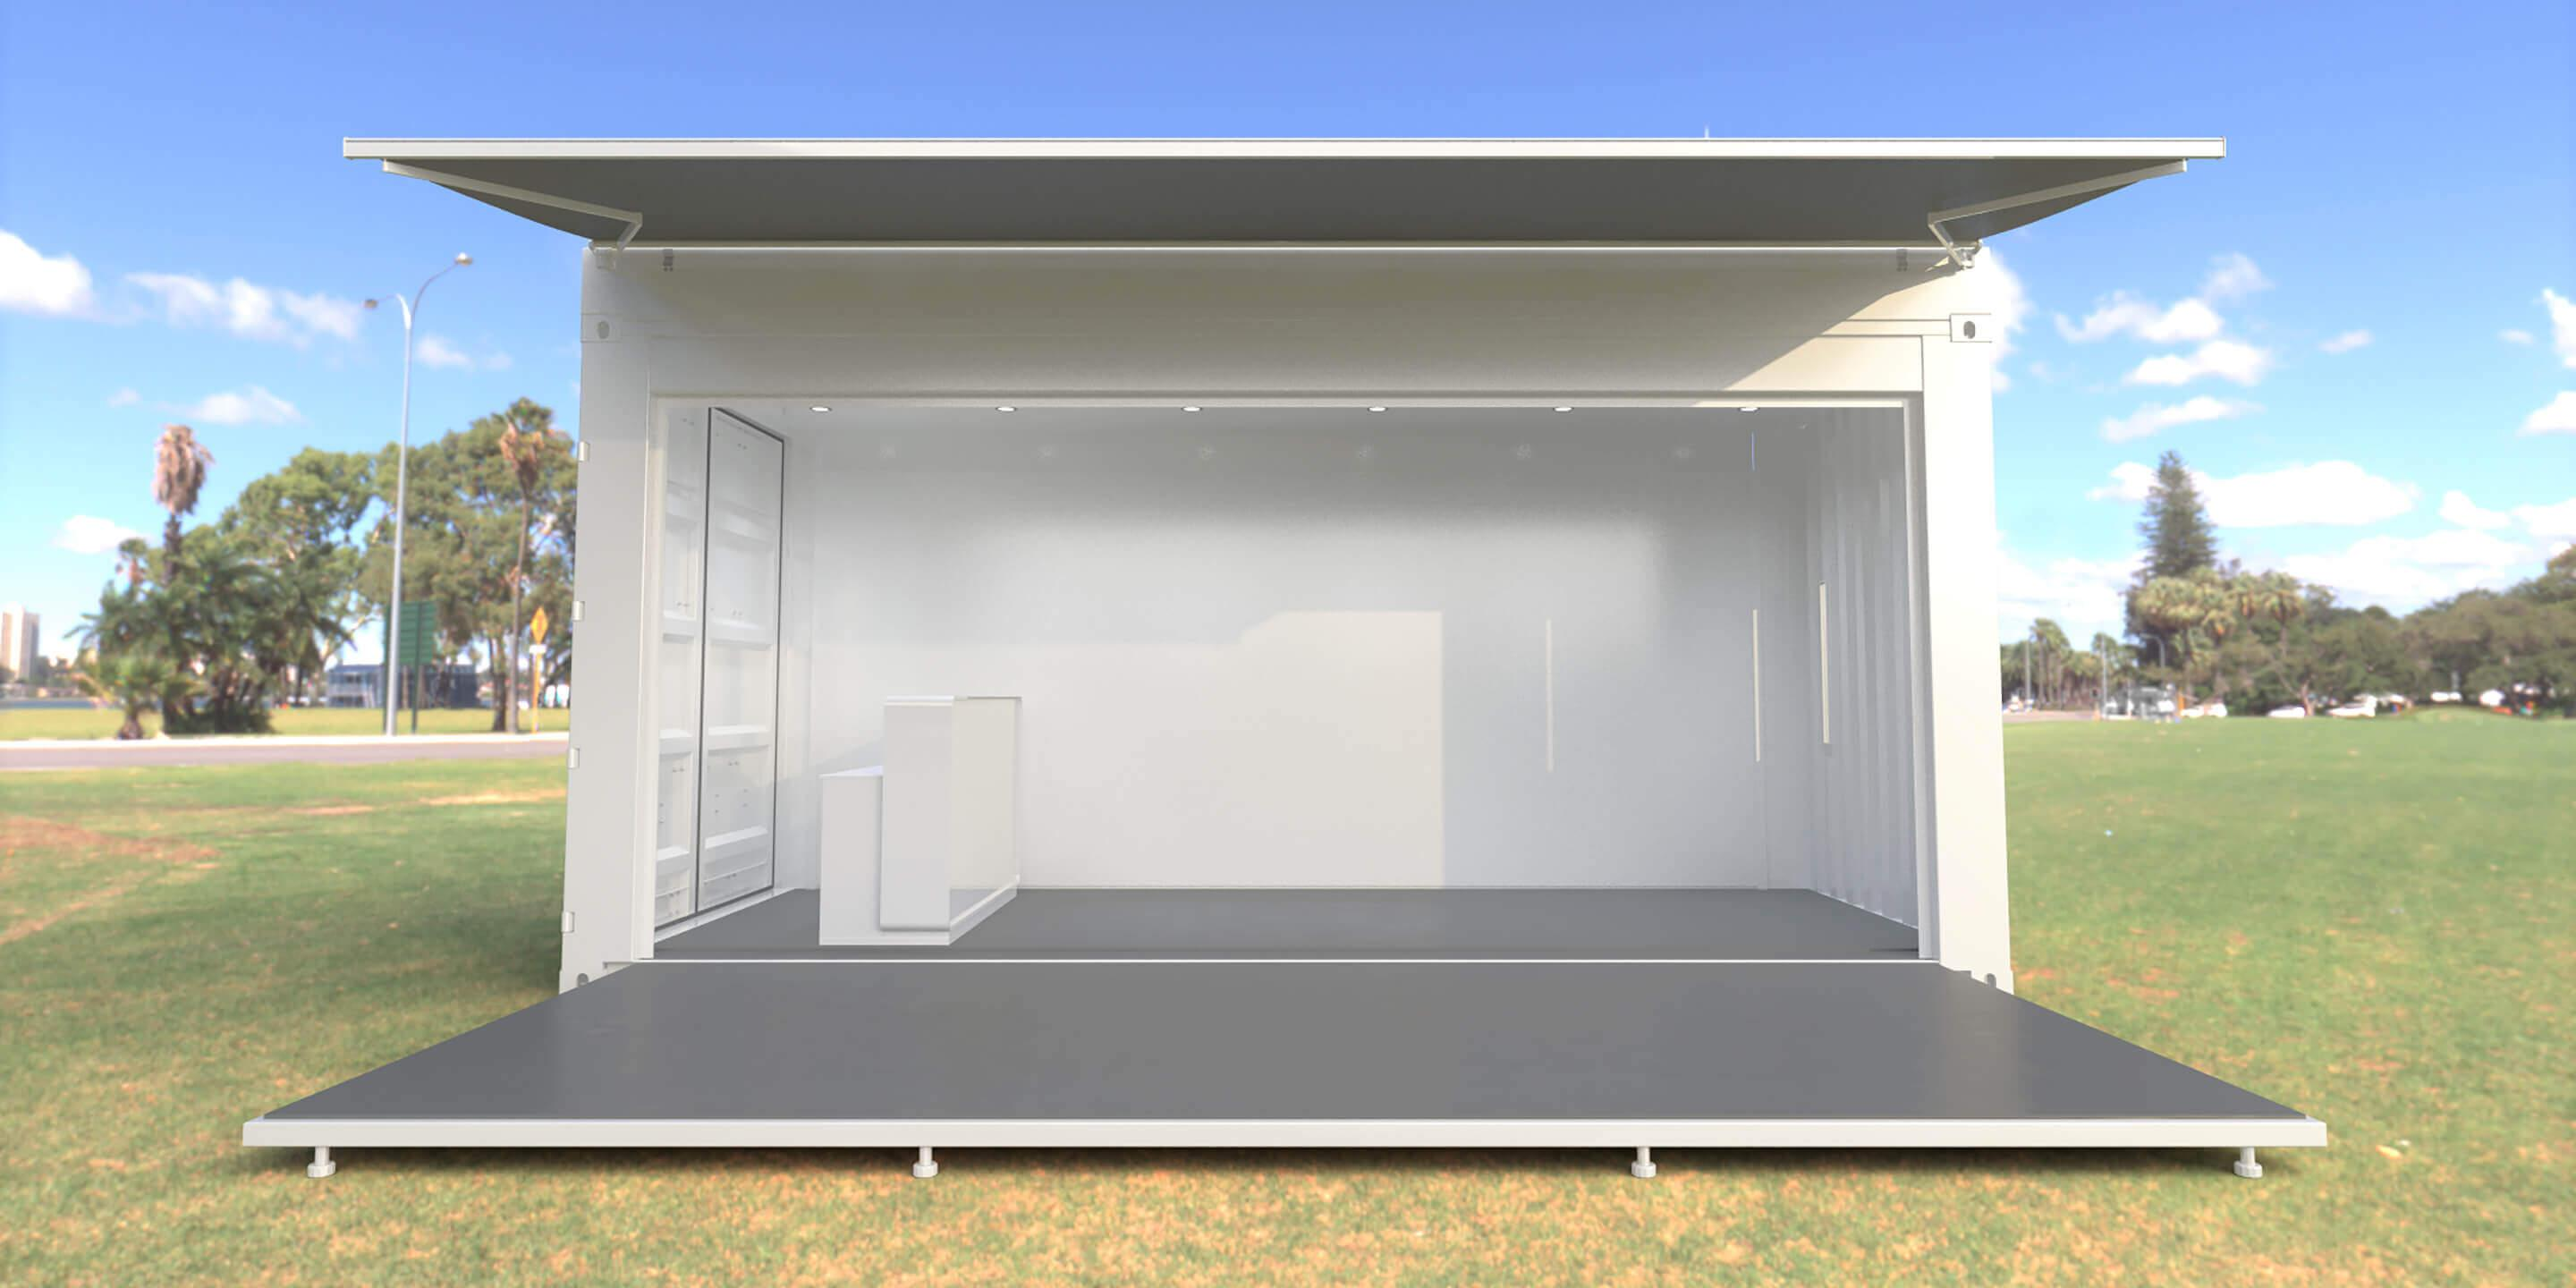 Shipping Container Conversions: Versatile Event Container